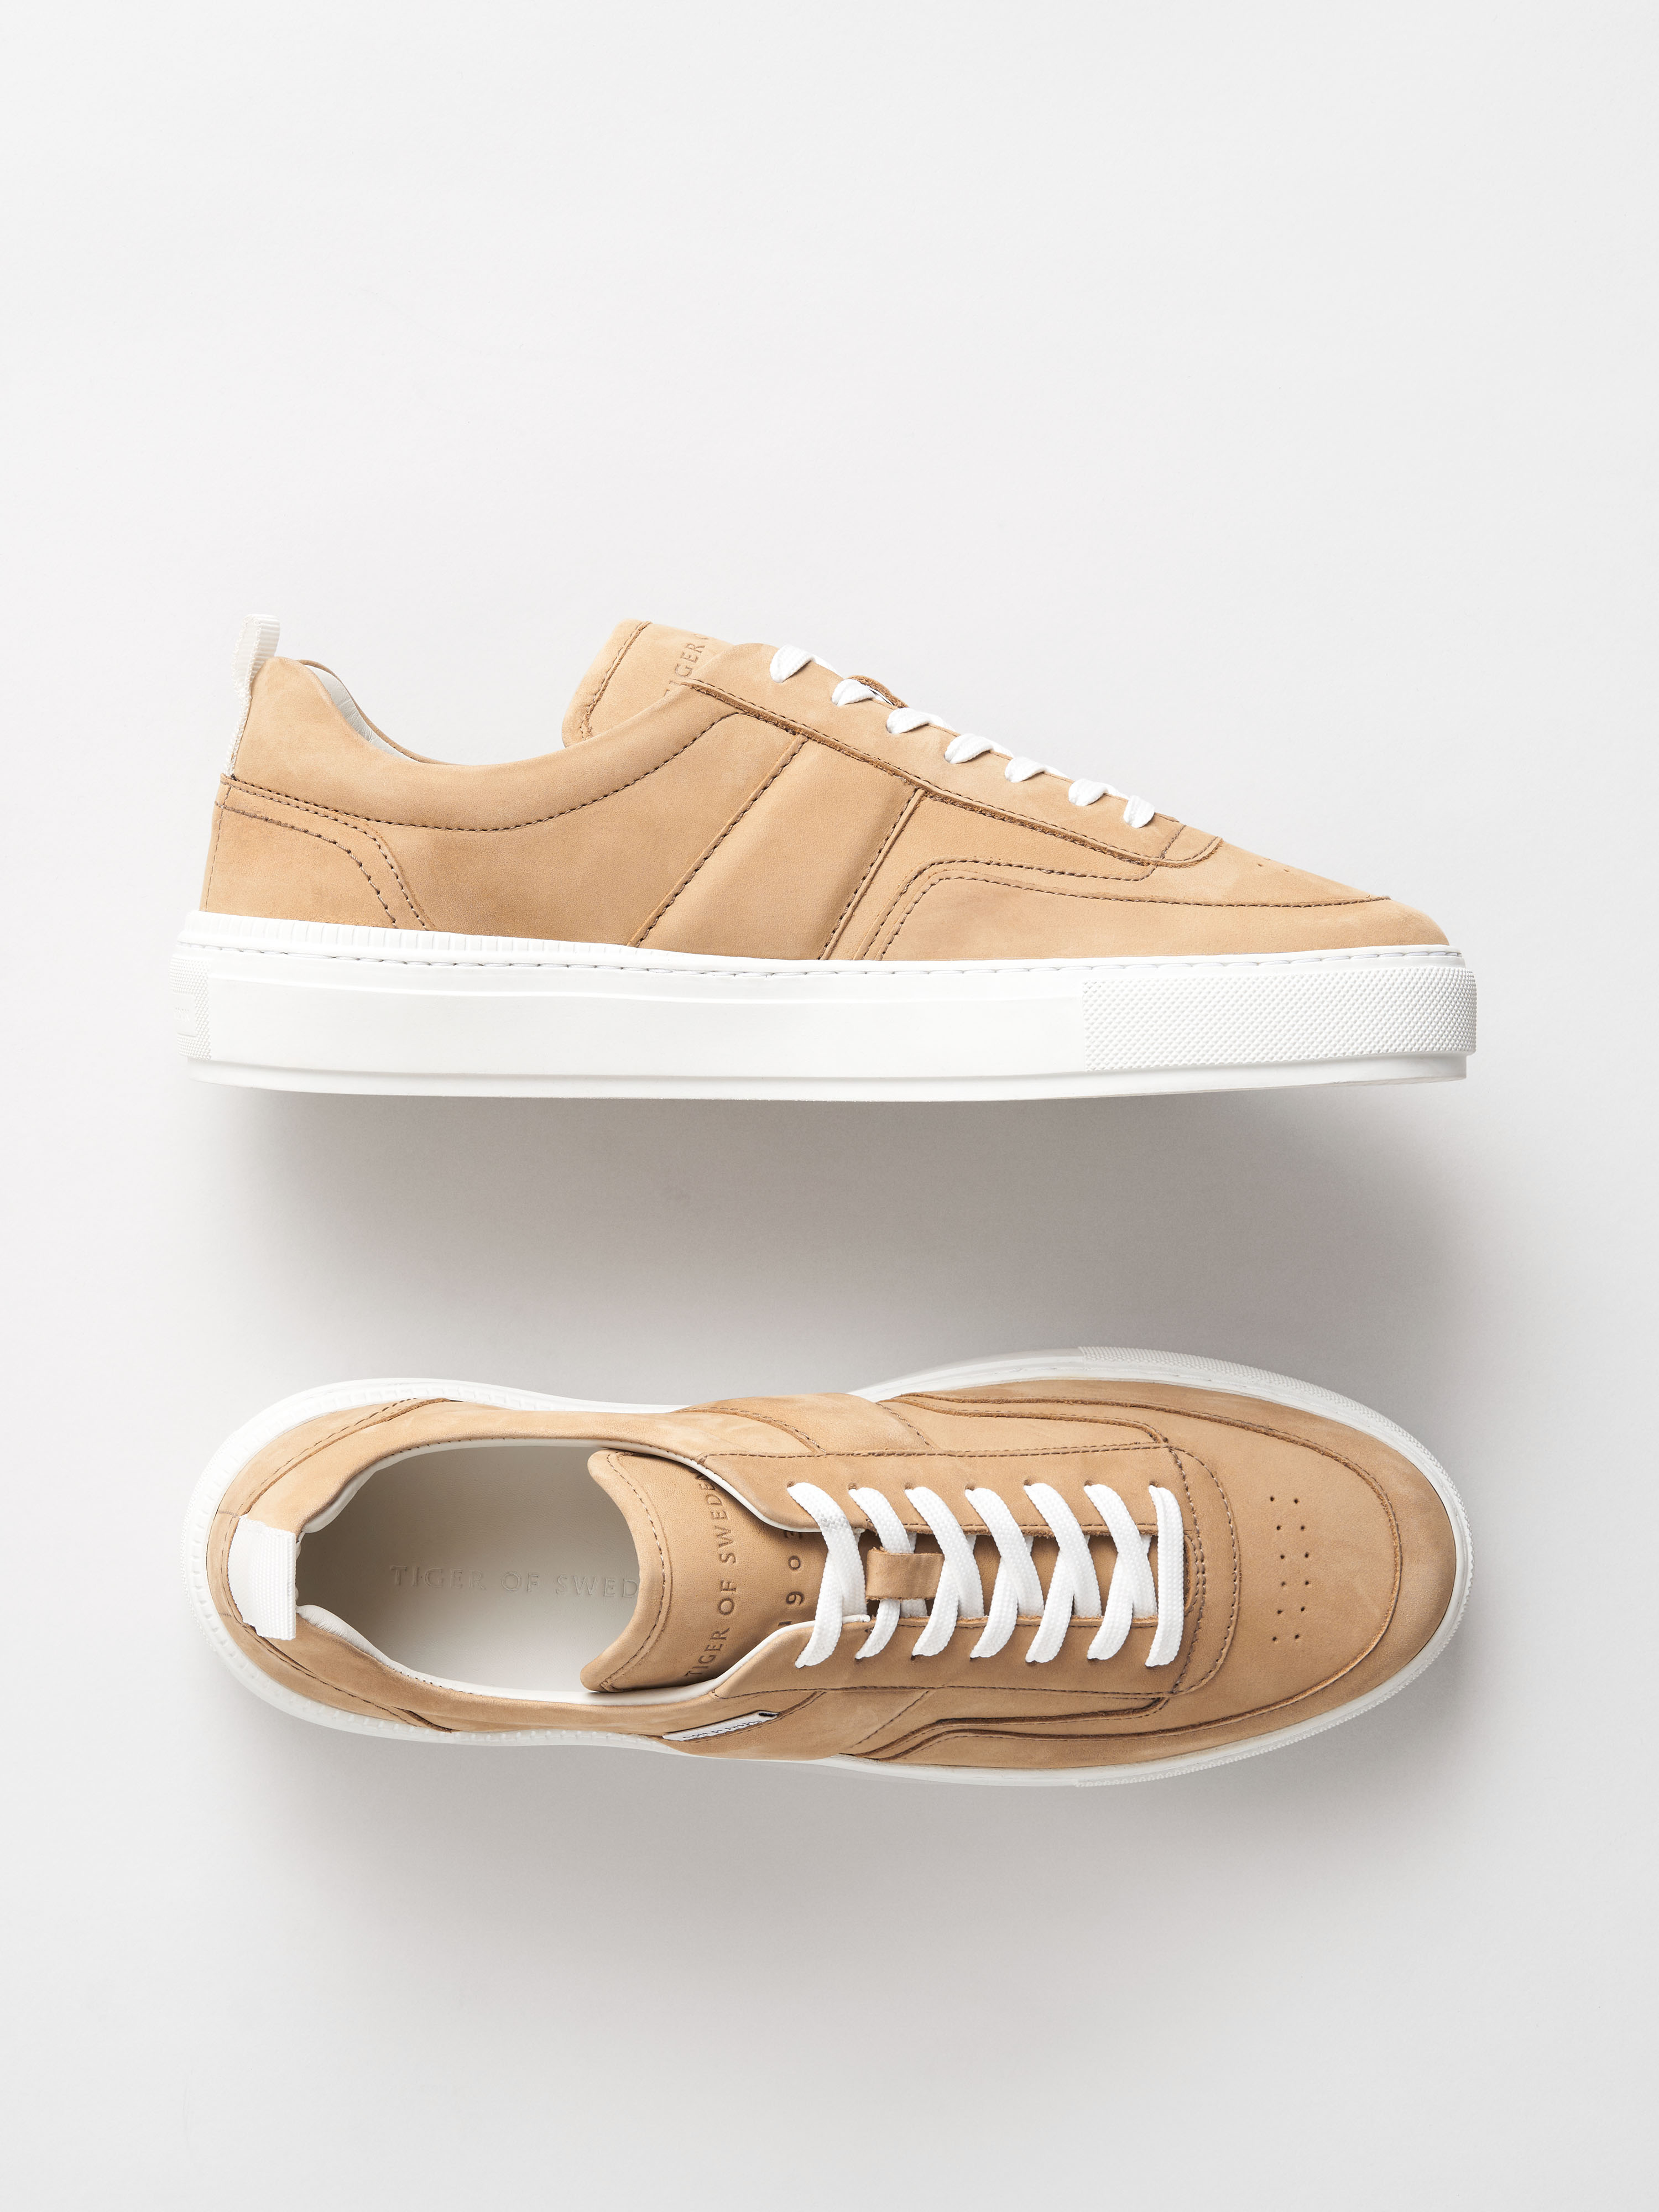 Tiger of Sweden Salo sneakers, putty beige, 40